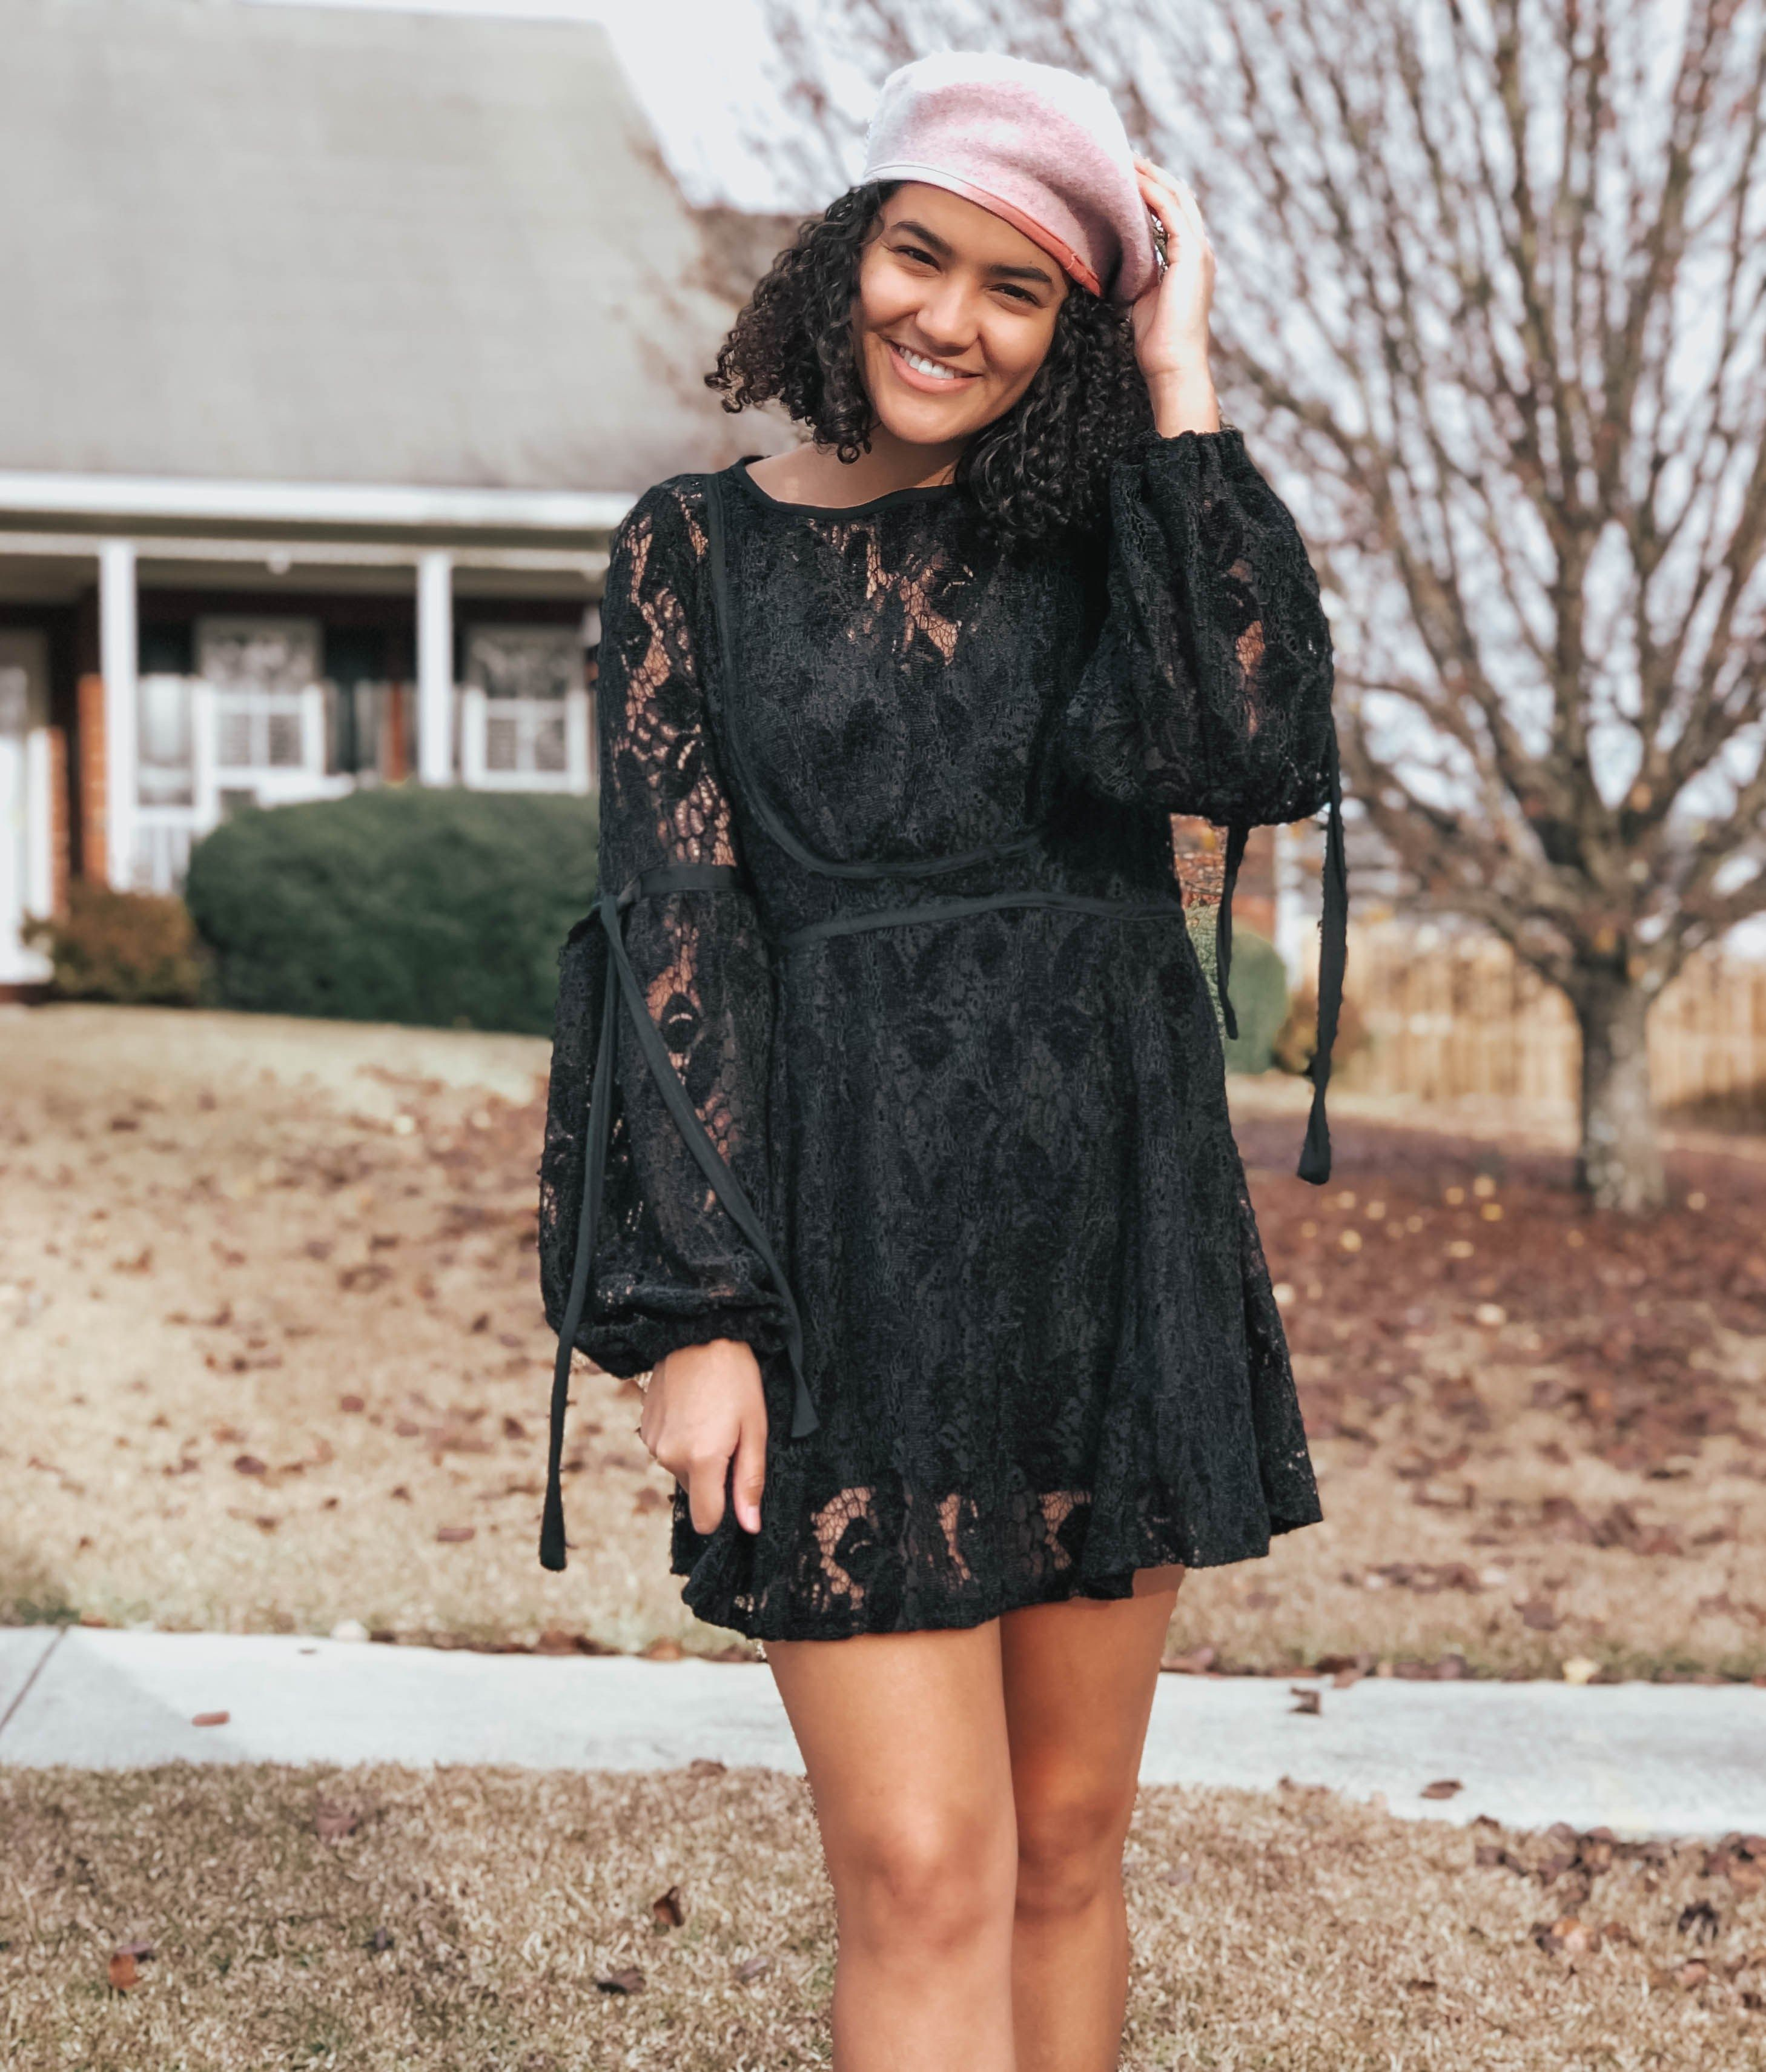 Sequins And Sales A Fashion Lifestyle And Travel Blog Sequins And Sales Outfits With Hats Black Lace Dress Outfit Lace Dress With Sleeves [ 3421 x 2916 Pixel ]